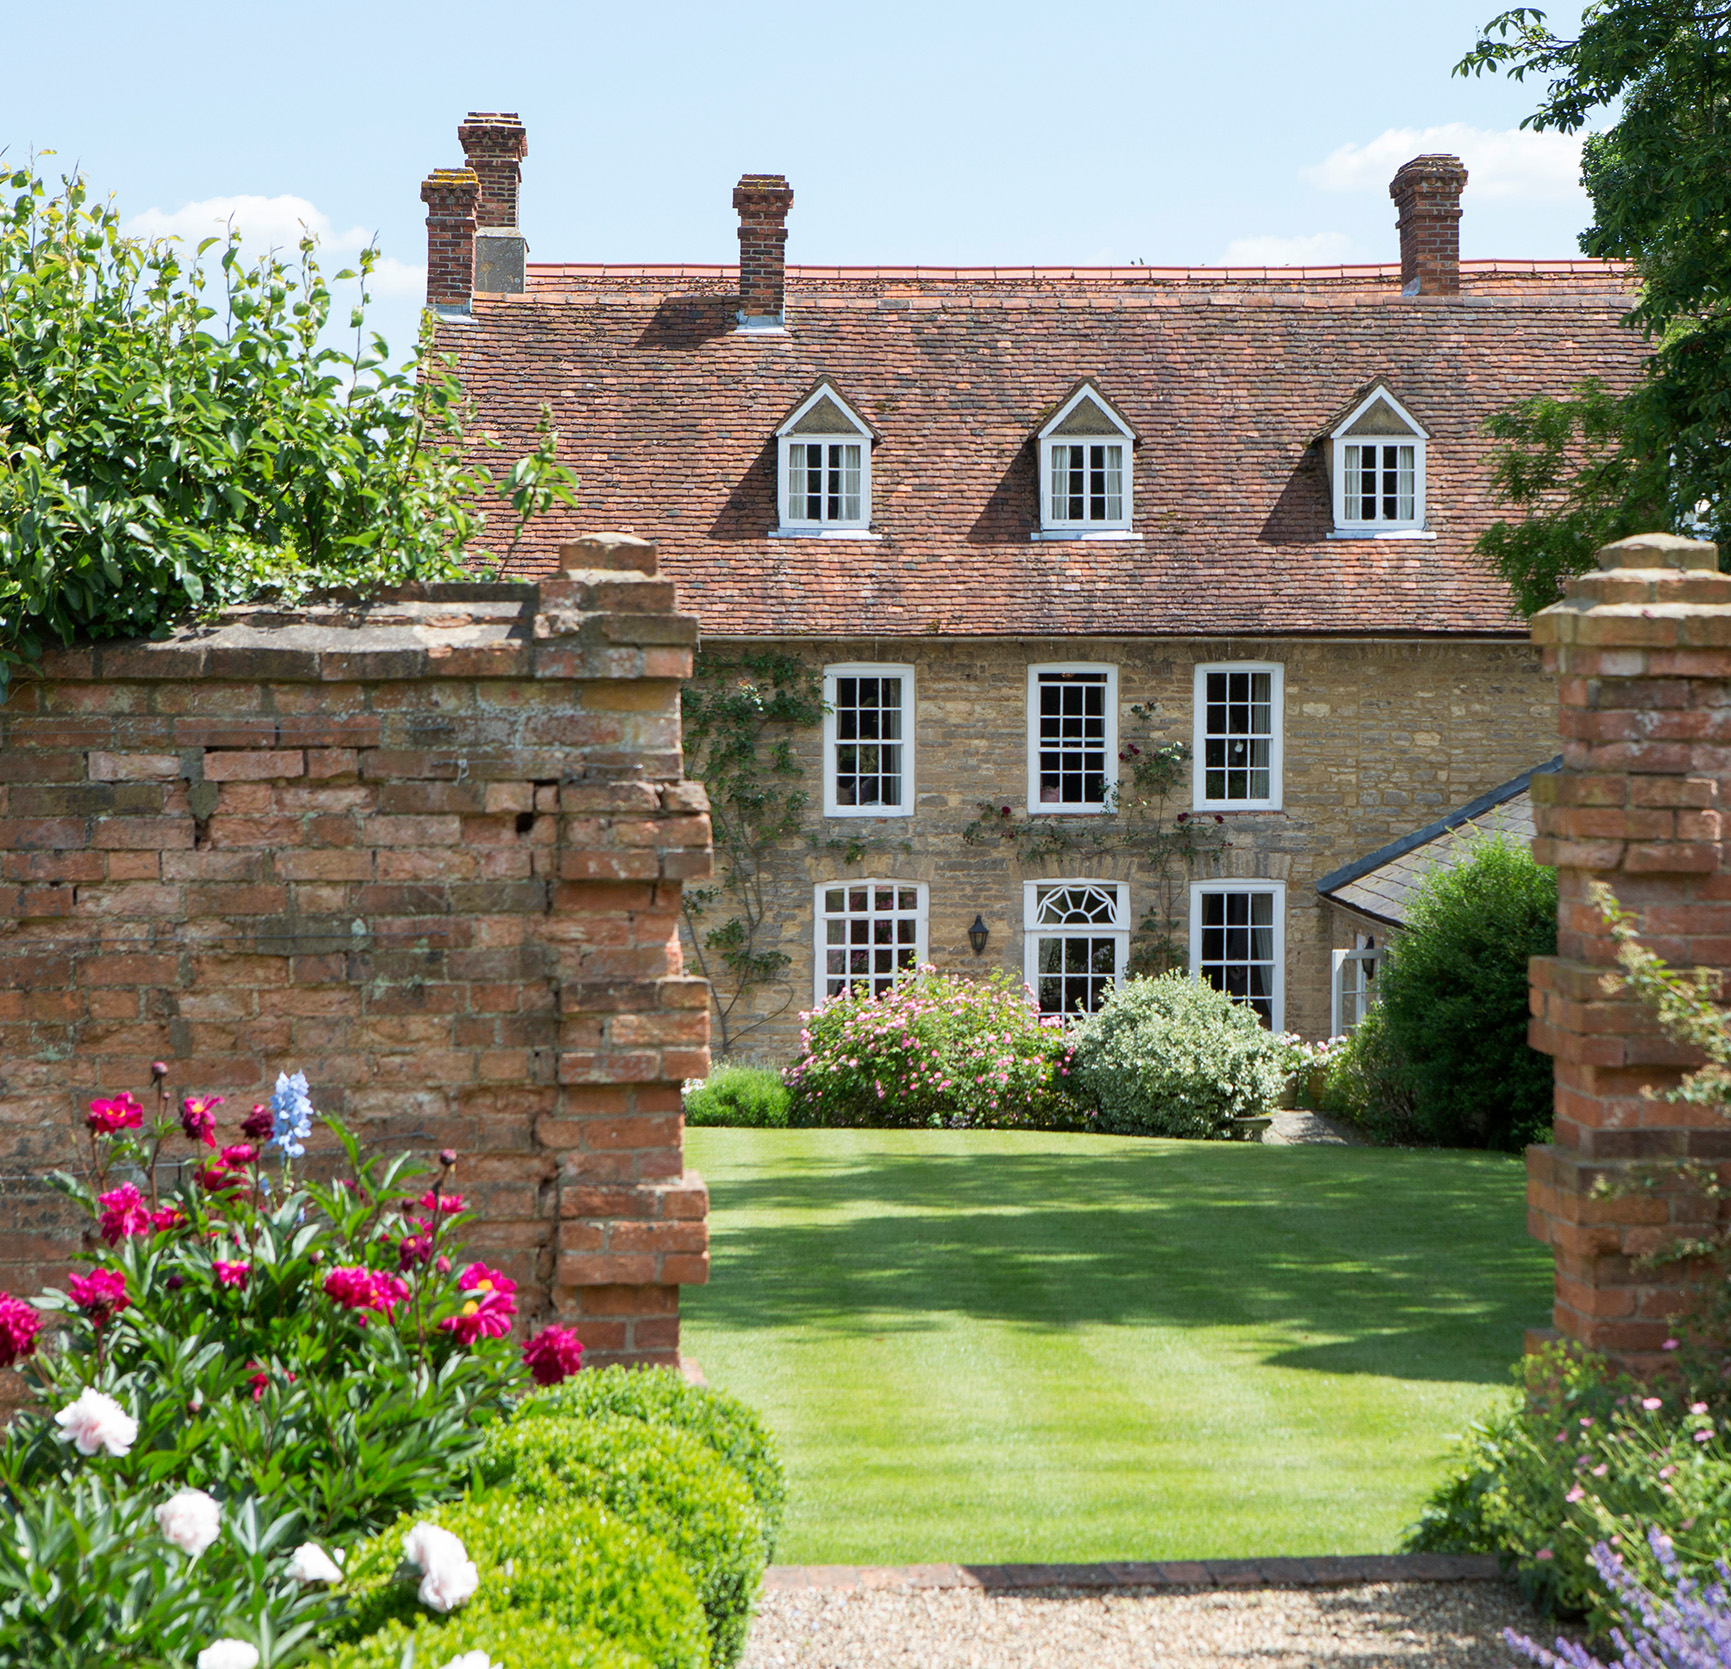 The Country House Department are estate agents with expertise in rural properties